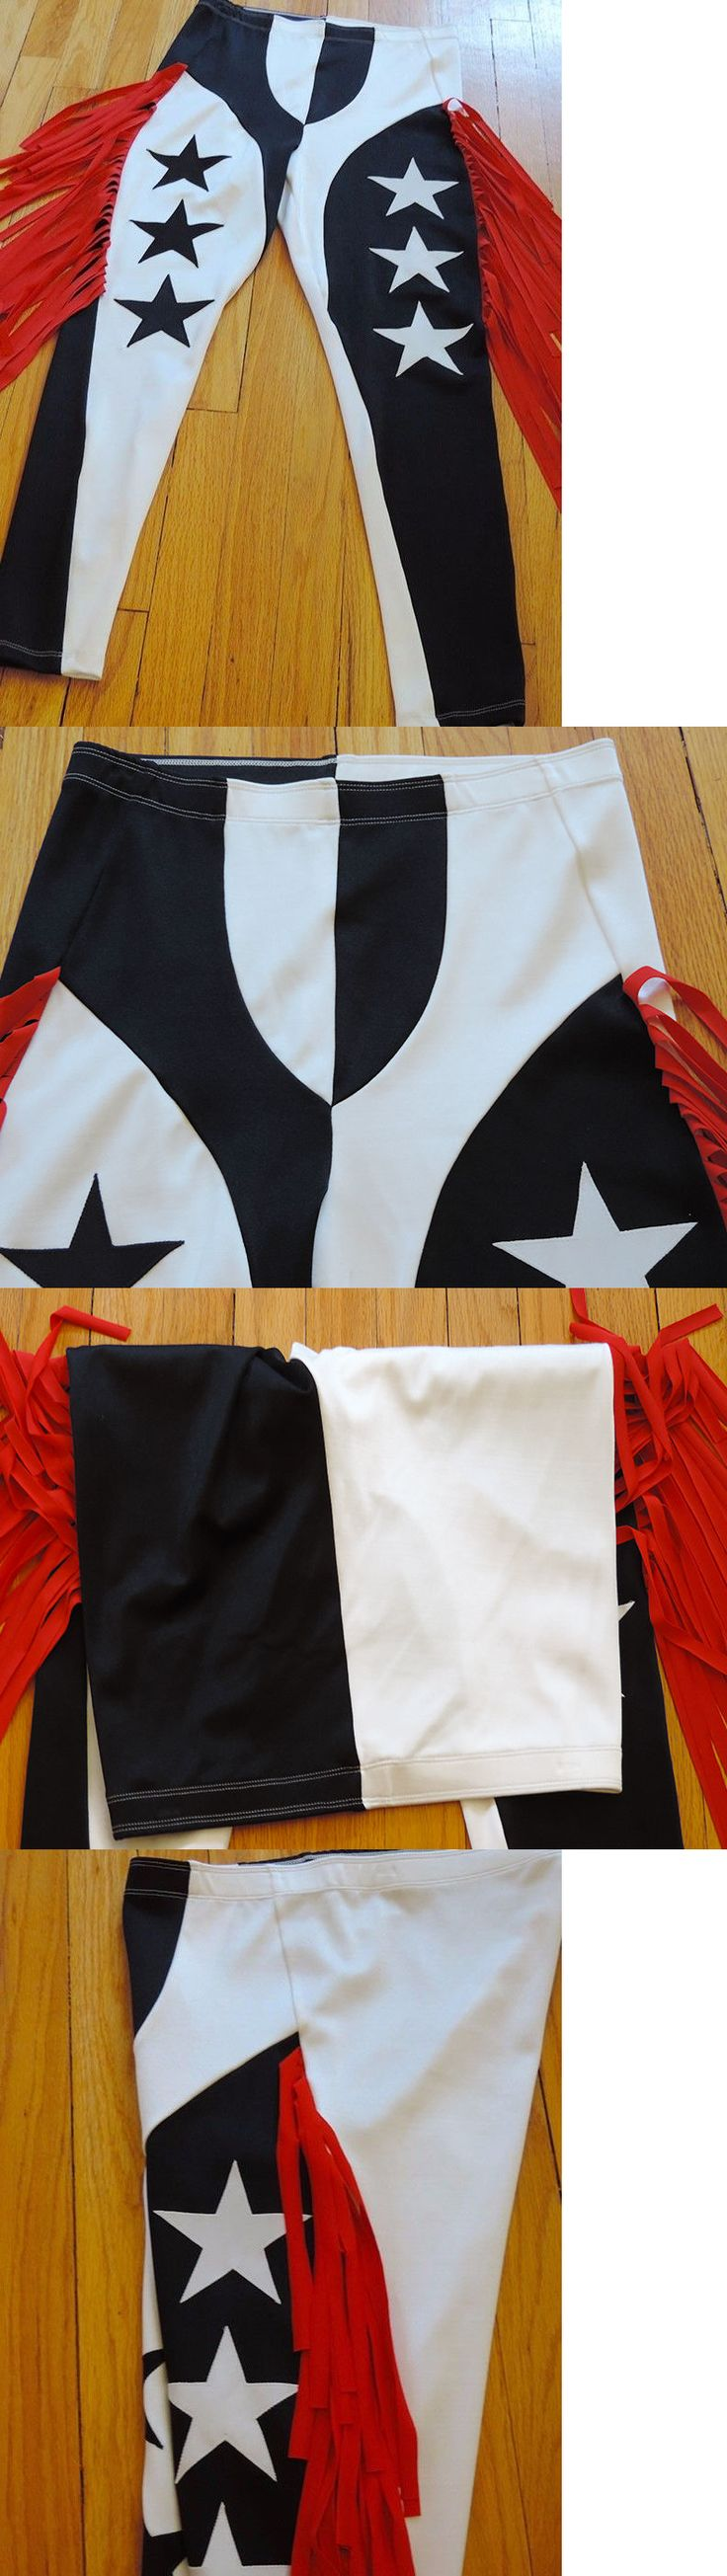 Clothing 79796: L Fringe Wrestling Tights Randy Savage Style Black White Red Star Cosplay Gear -> BUY IT NOW ONLY: $49.99 on eBay!